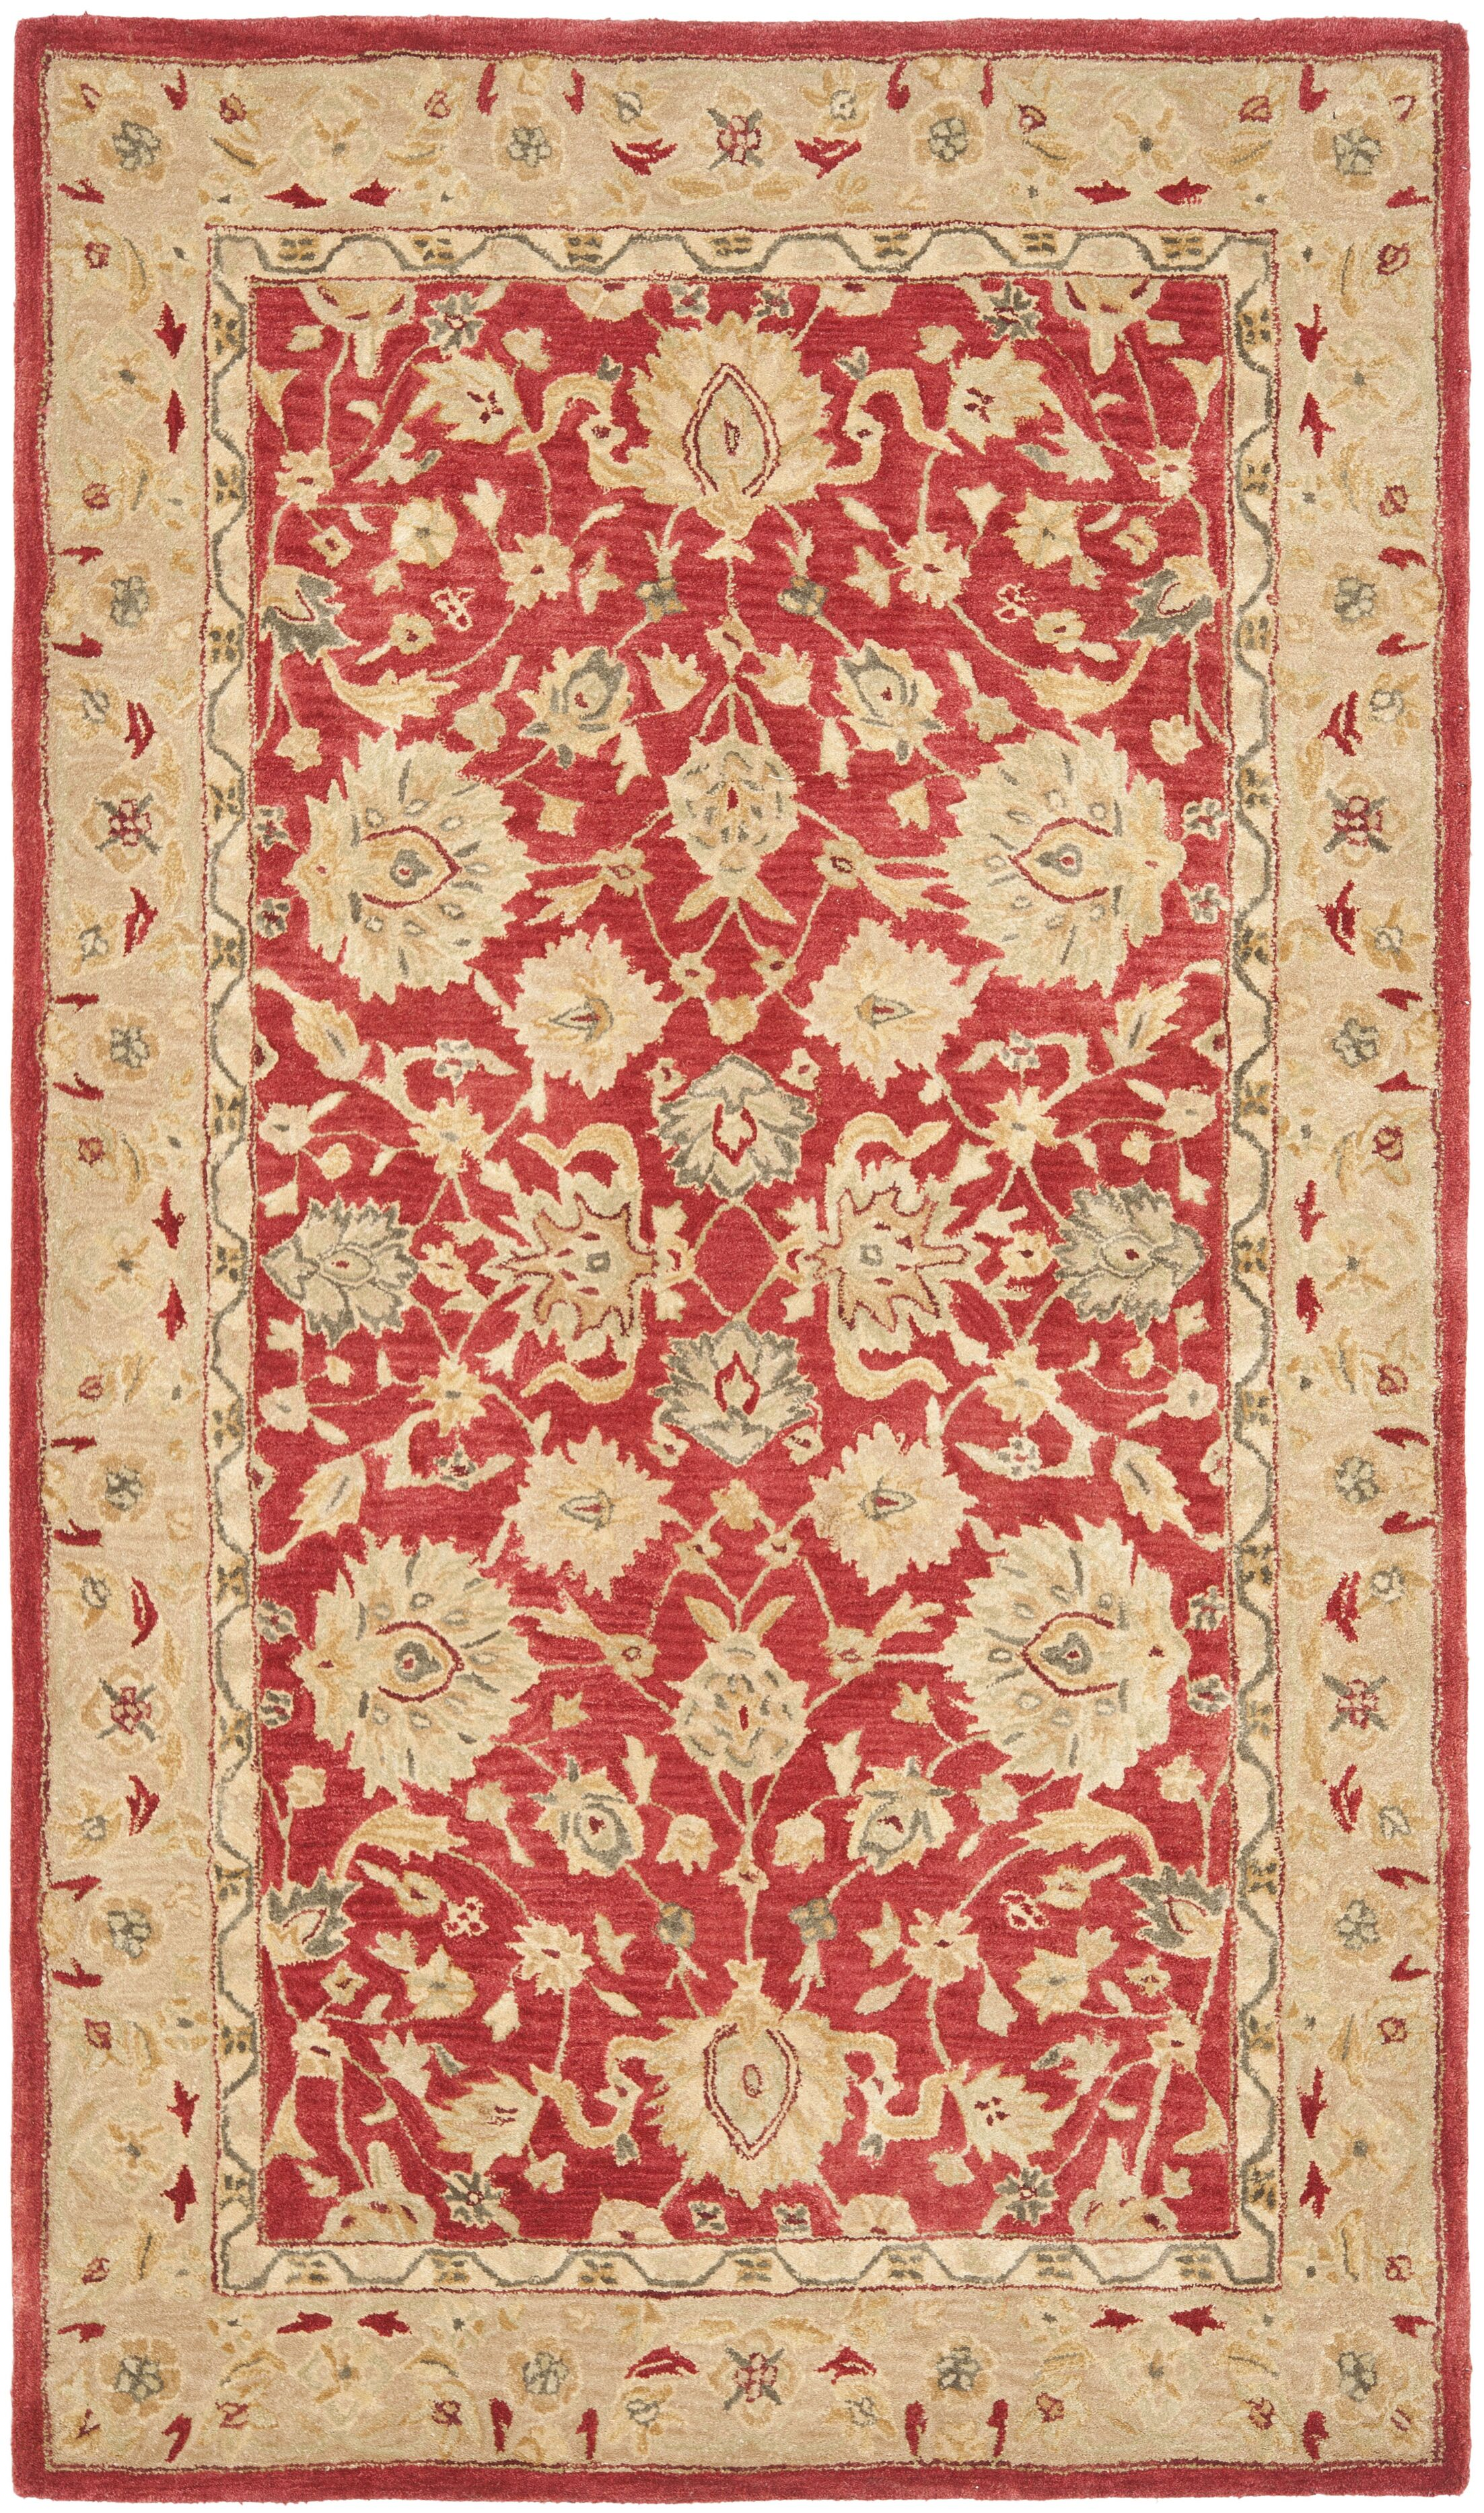 Pritchard Hand-Tufted/Hand-Hooked  Red/Ivory Area Rug Rug Size: Rectangle 6' x 9'